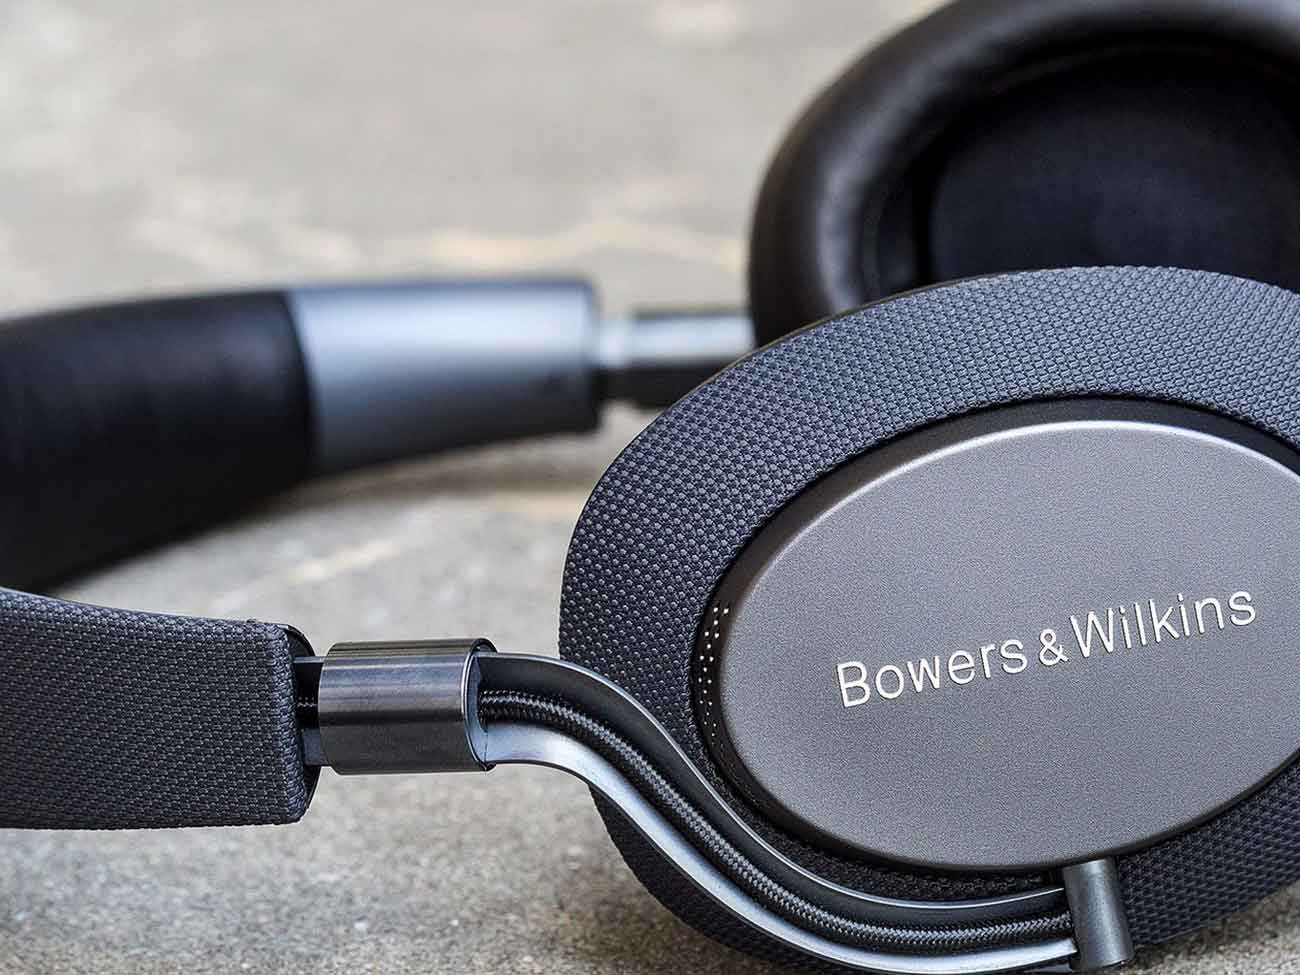 Bowers & Wilkins